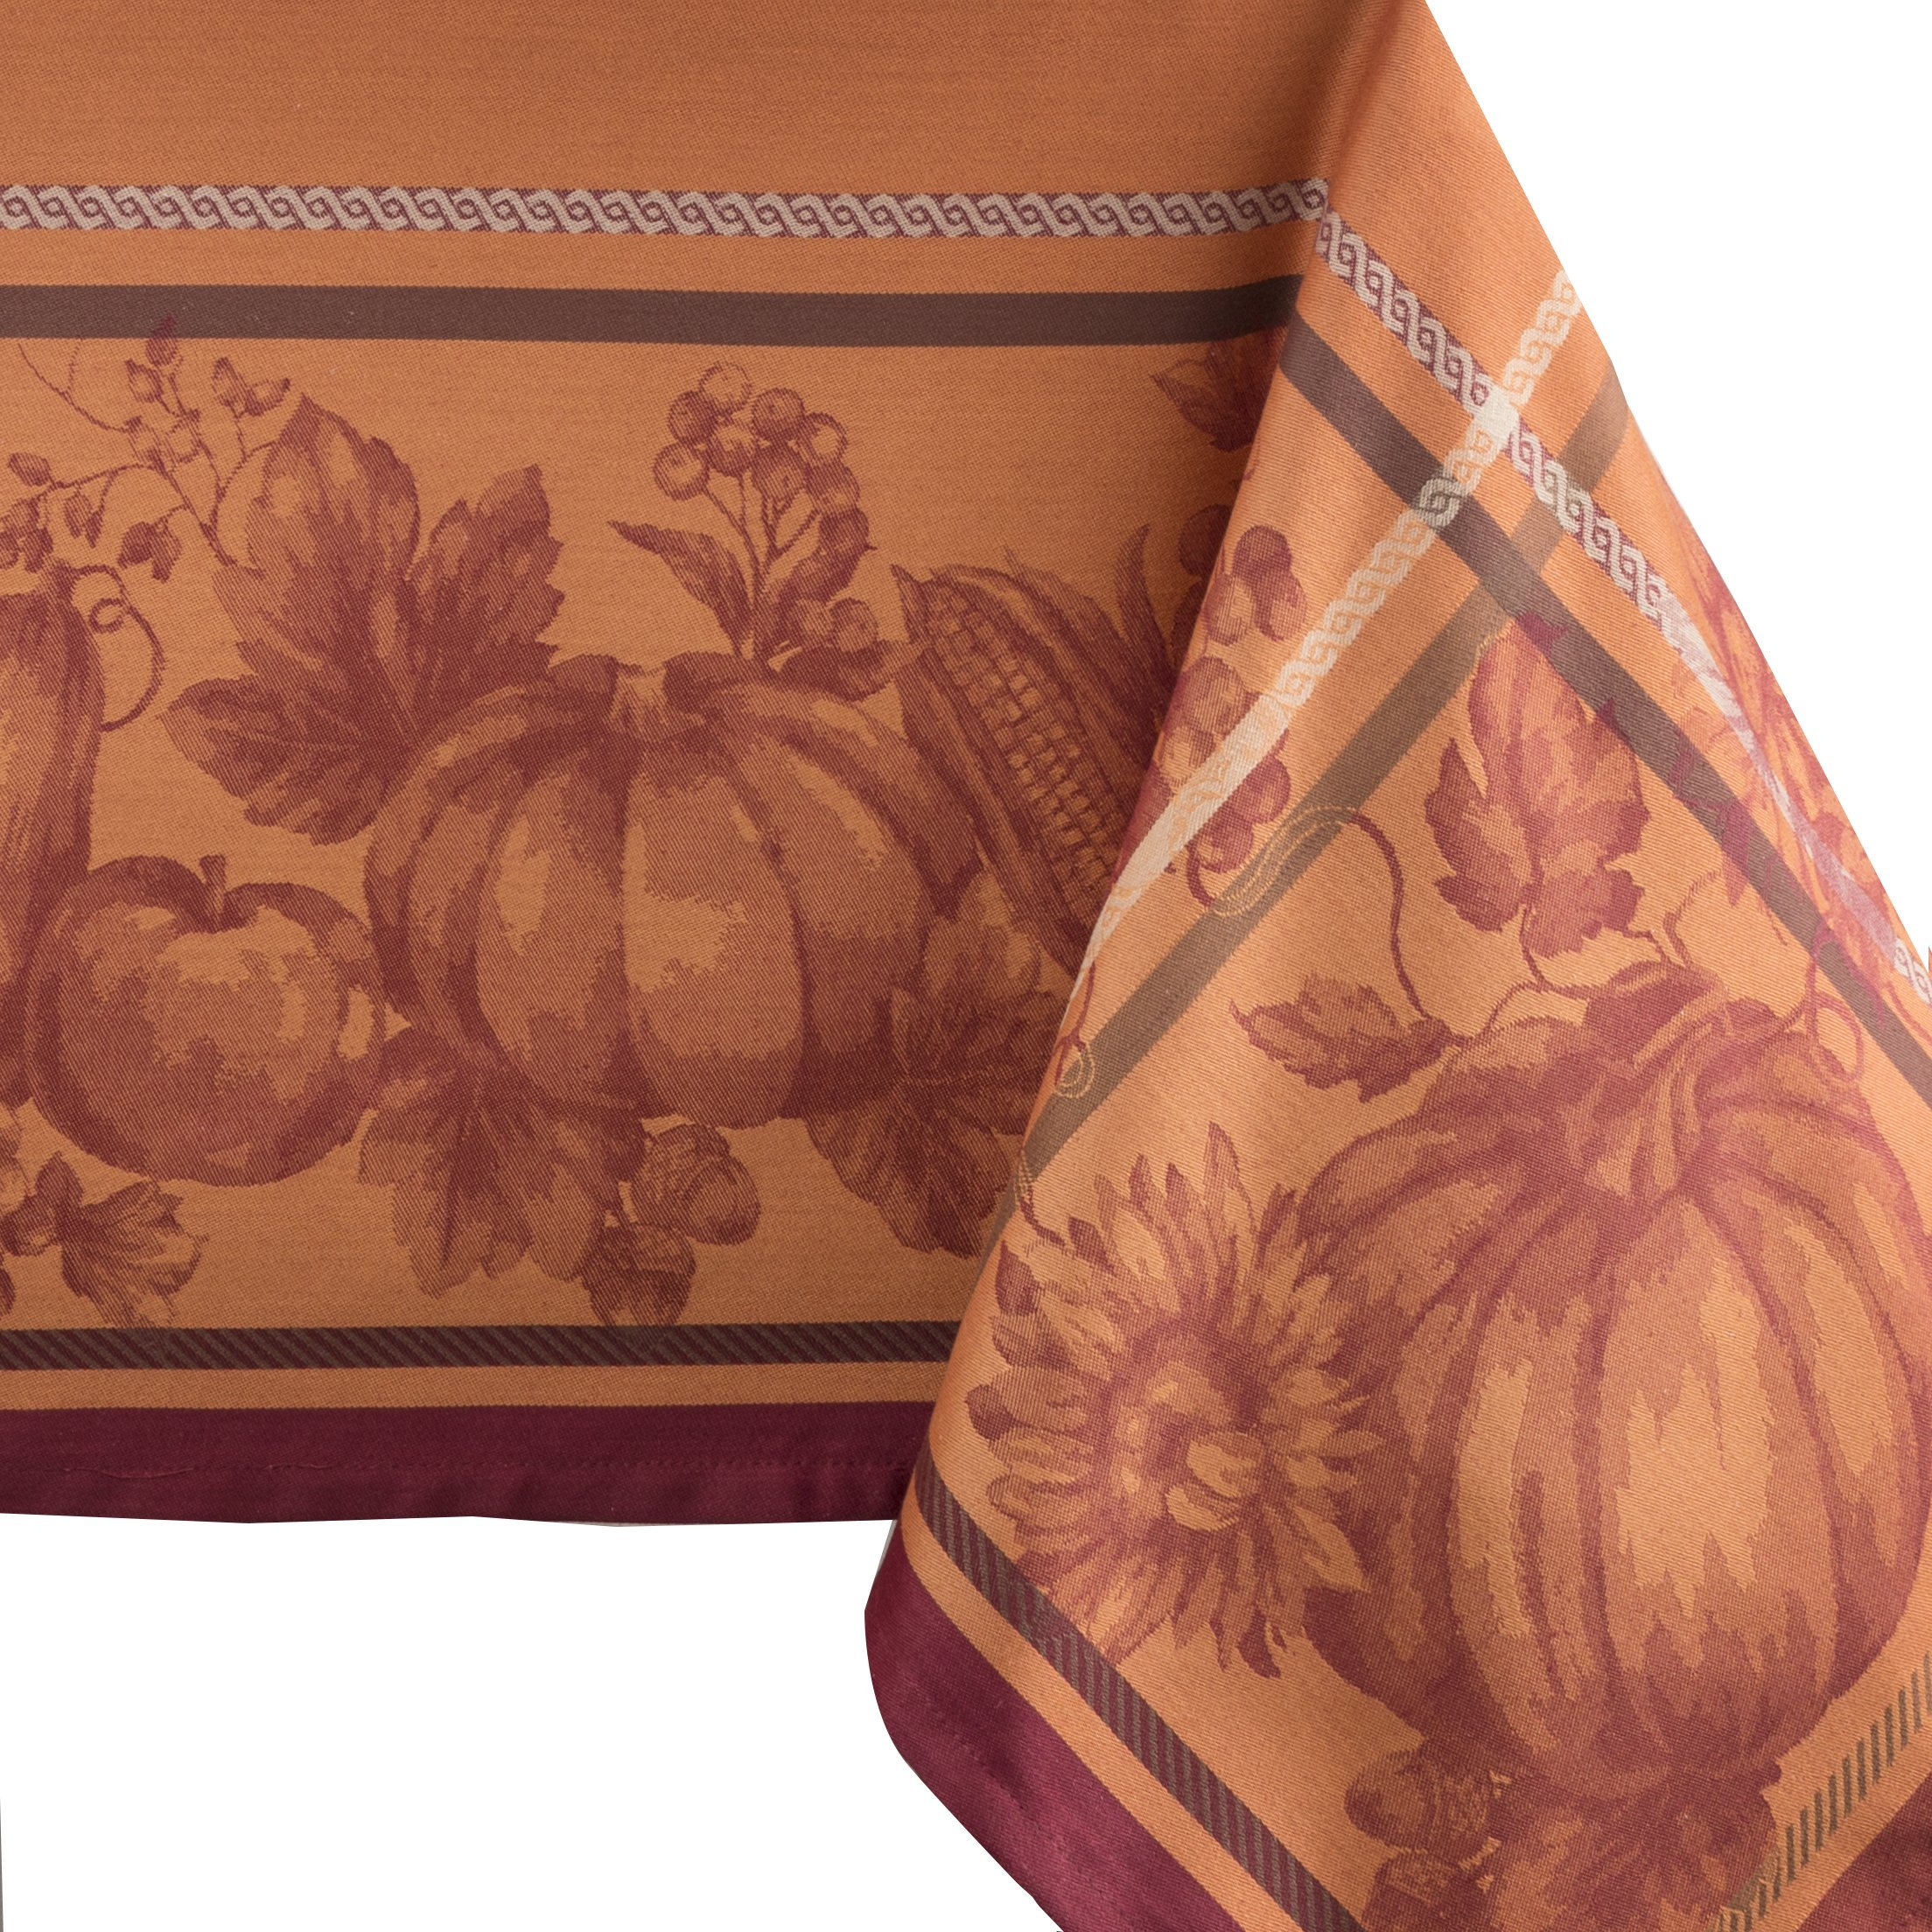 Benson Mills Harvest Royalty Engineered Yarn Dyed Jacquard Tablecloth, 60 by 84-Inch by Benson Mills